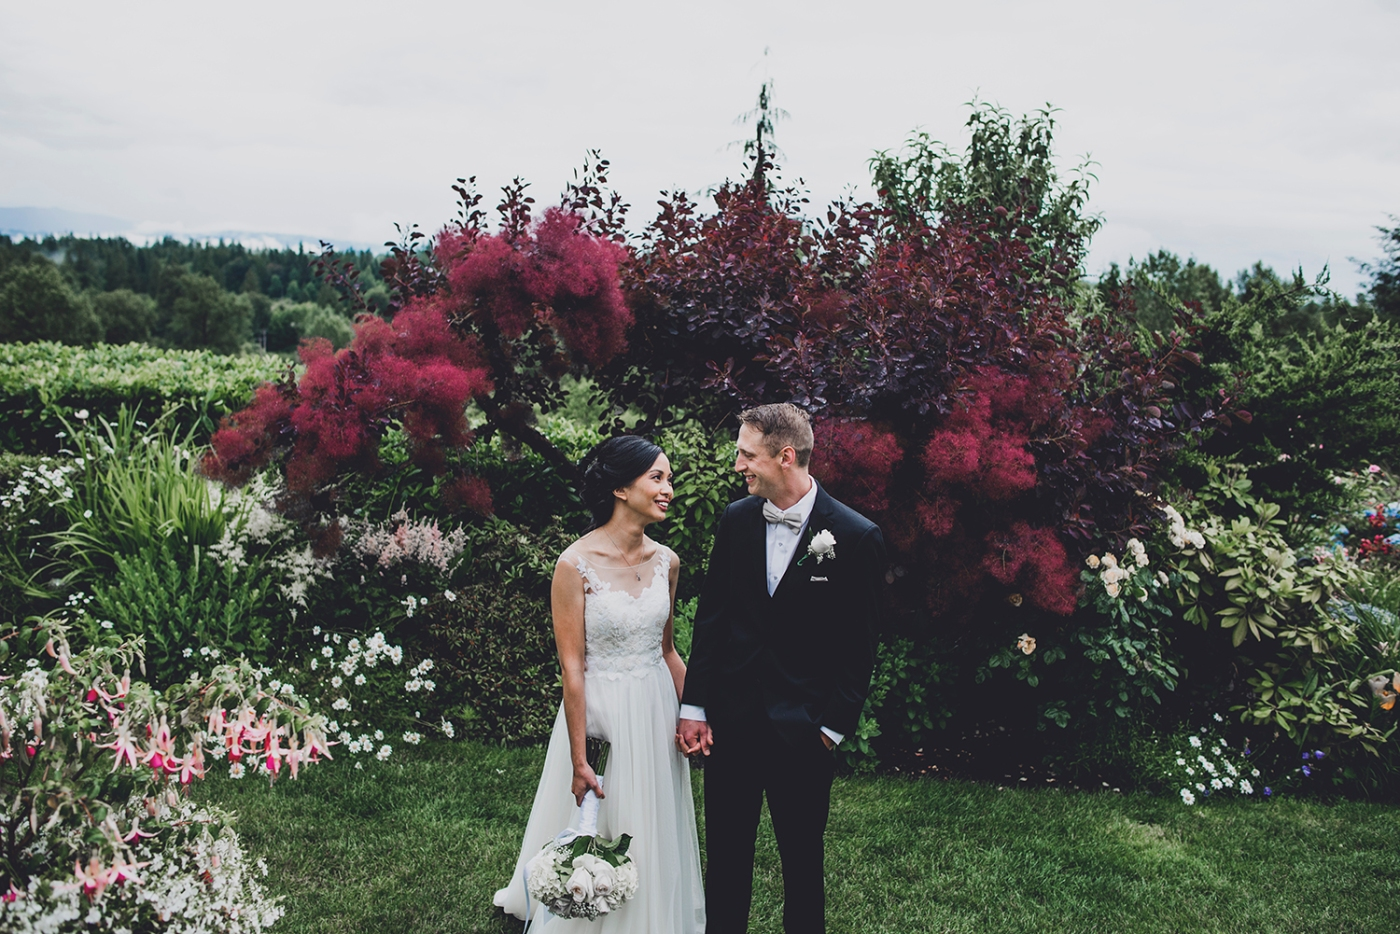 Jane_Speleers_photography_Seattle_Wedding_at_Wild_Rose_estate_2016_Julienne_and_Brian_bride_groom_ DSC_0448